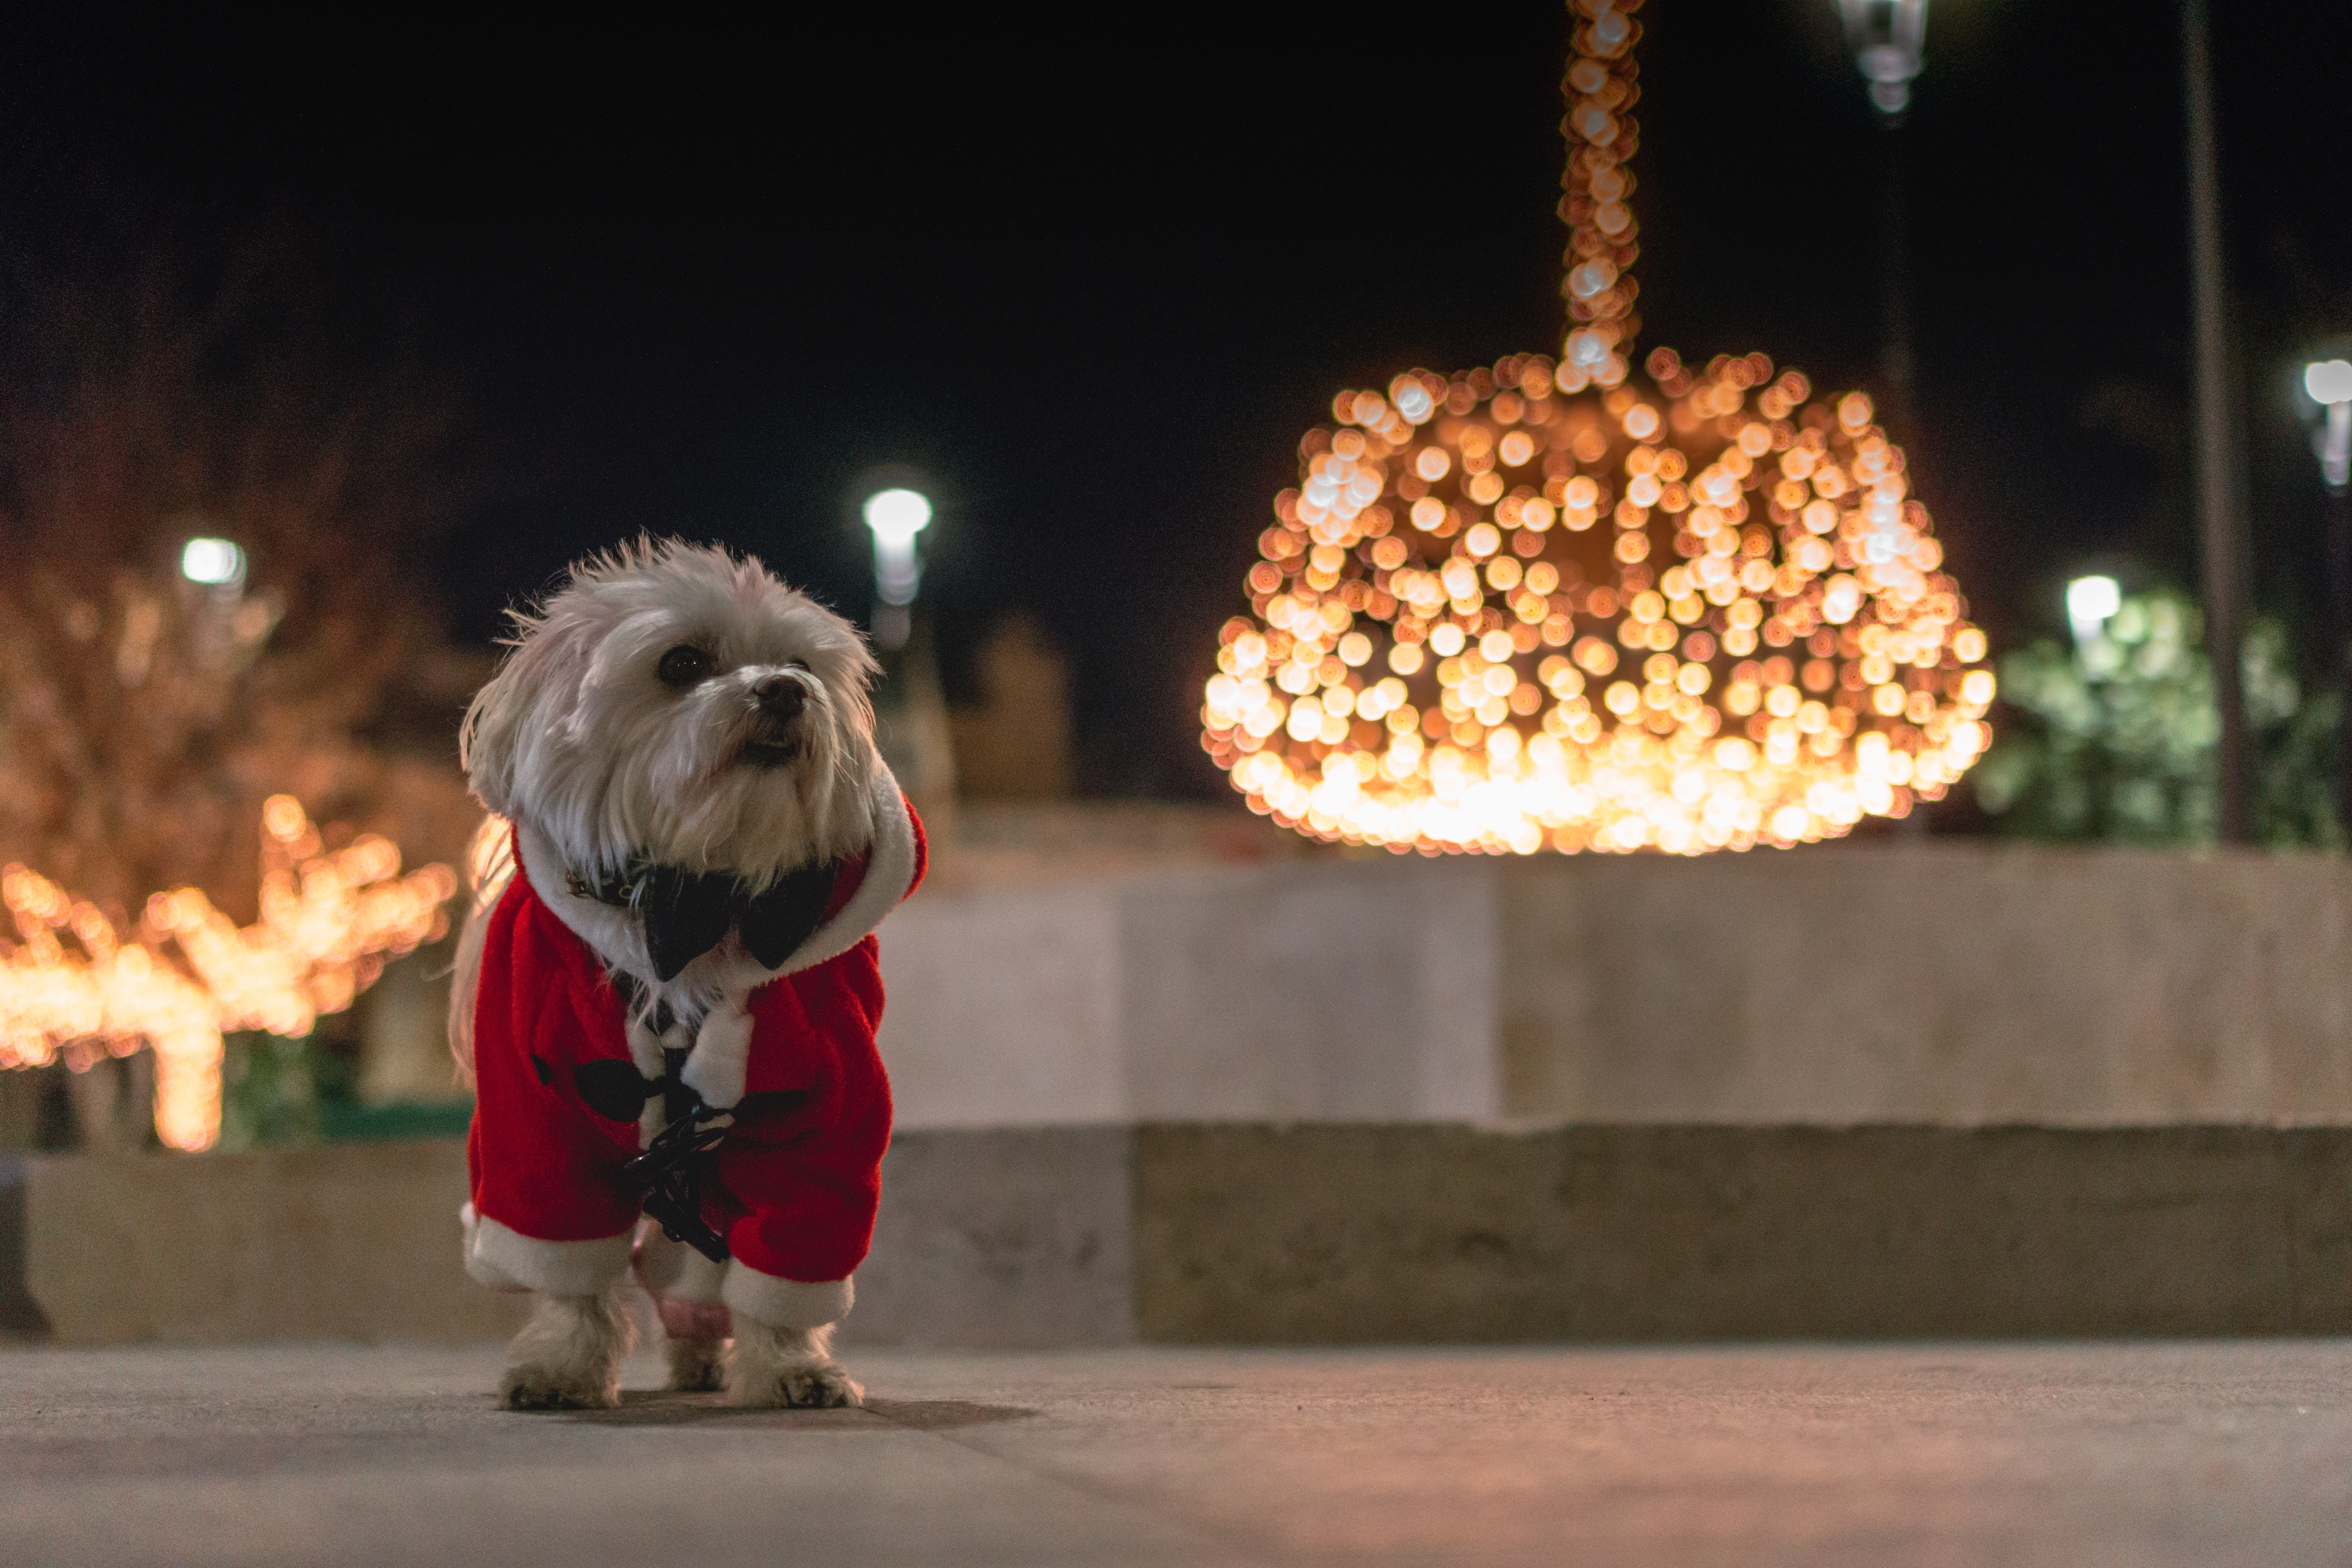 A dog wearing a Santa suit